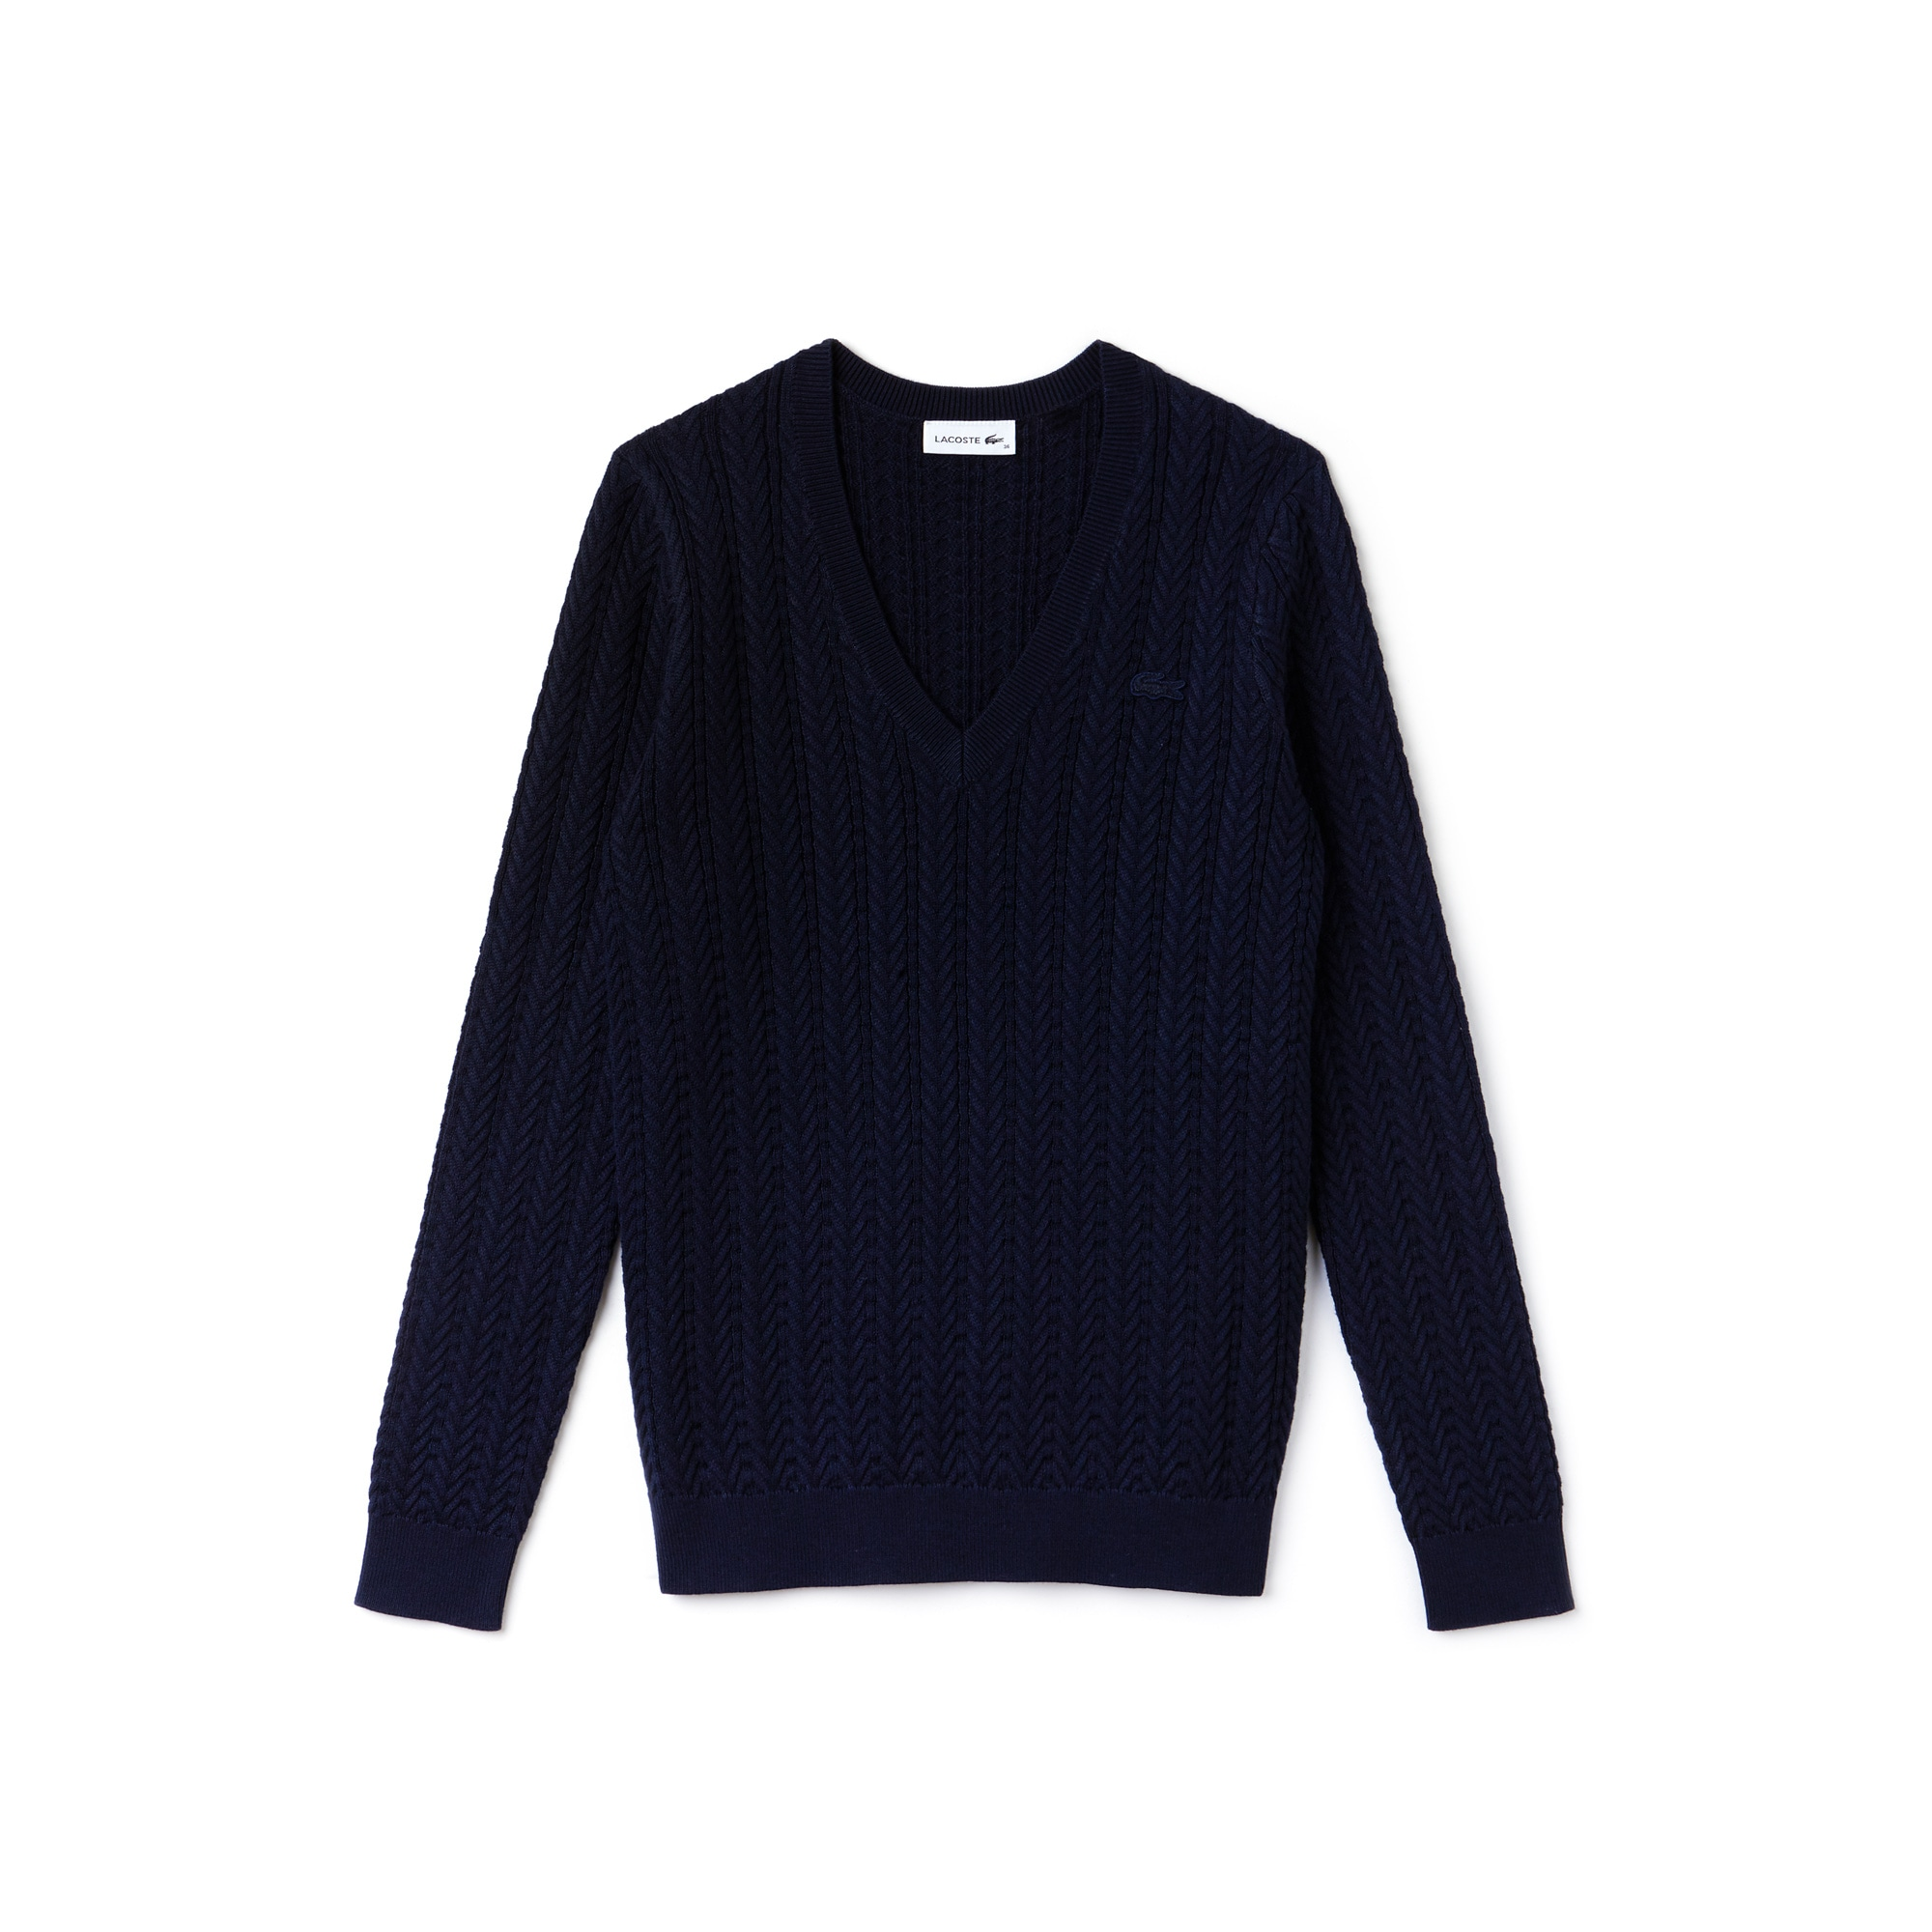 Women's V-neck Cable Knit Sweater | LACOSTE